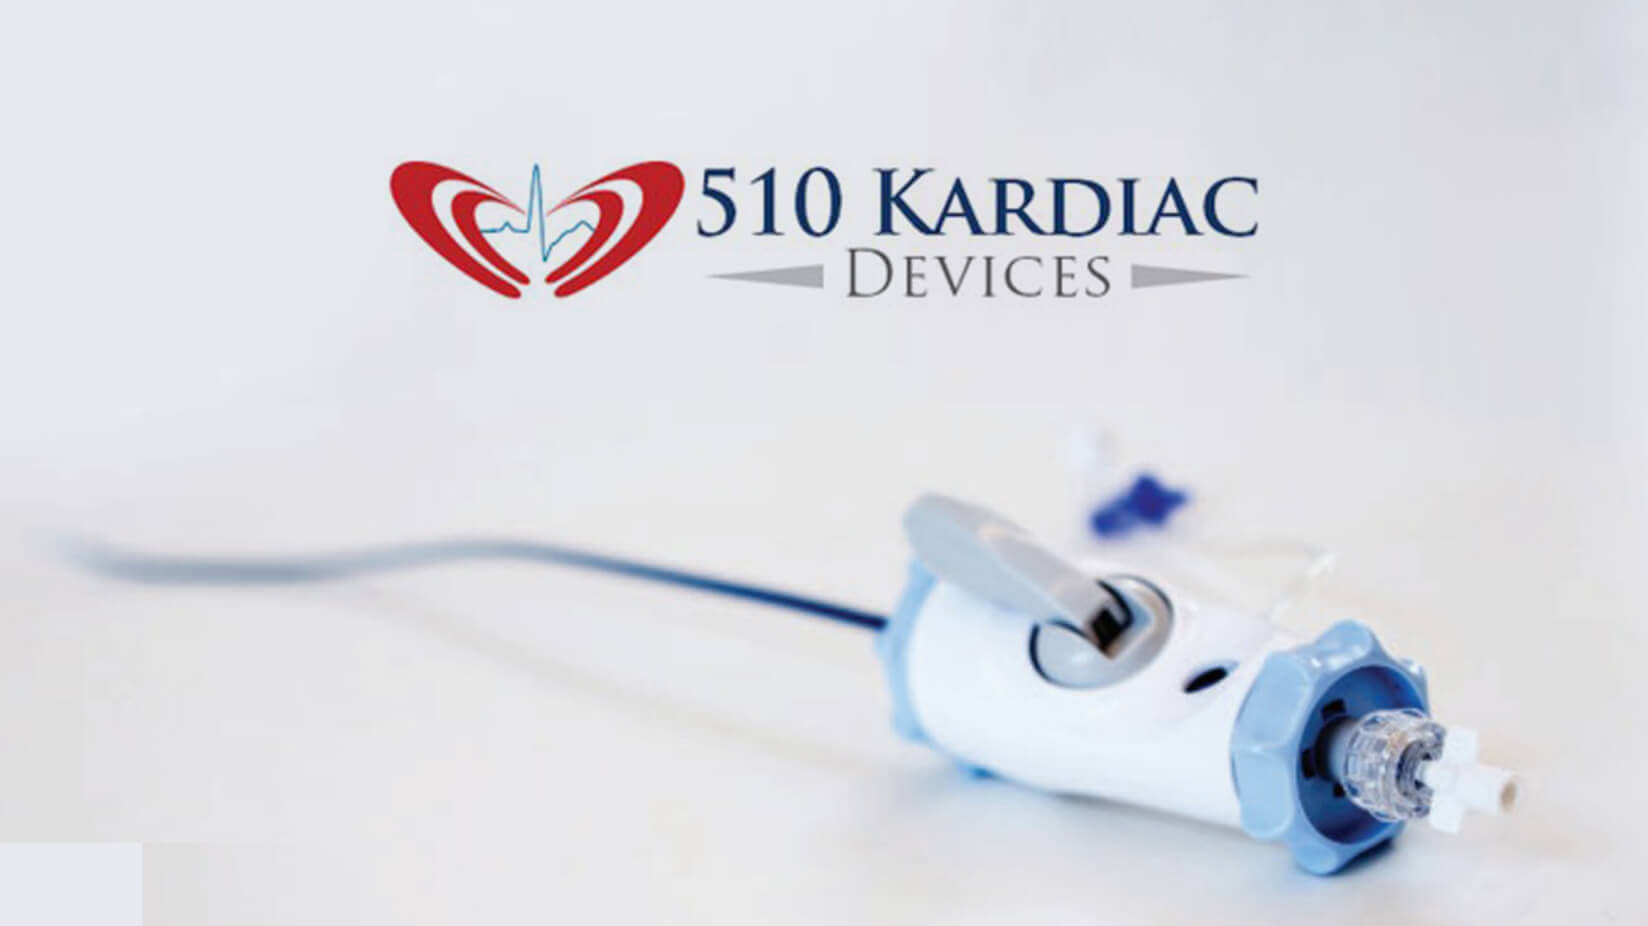 Keystone Heart, A Venus Medtech Company, Acquires 510 Kardiac Devices, Inc.